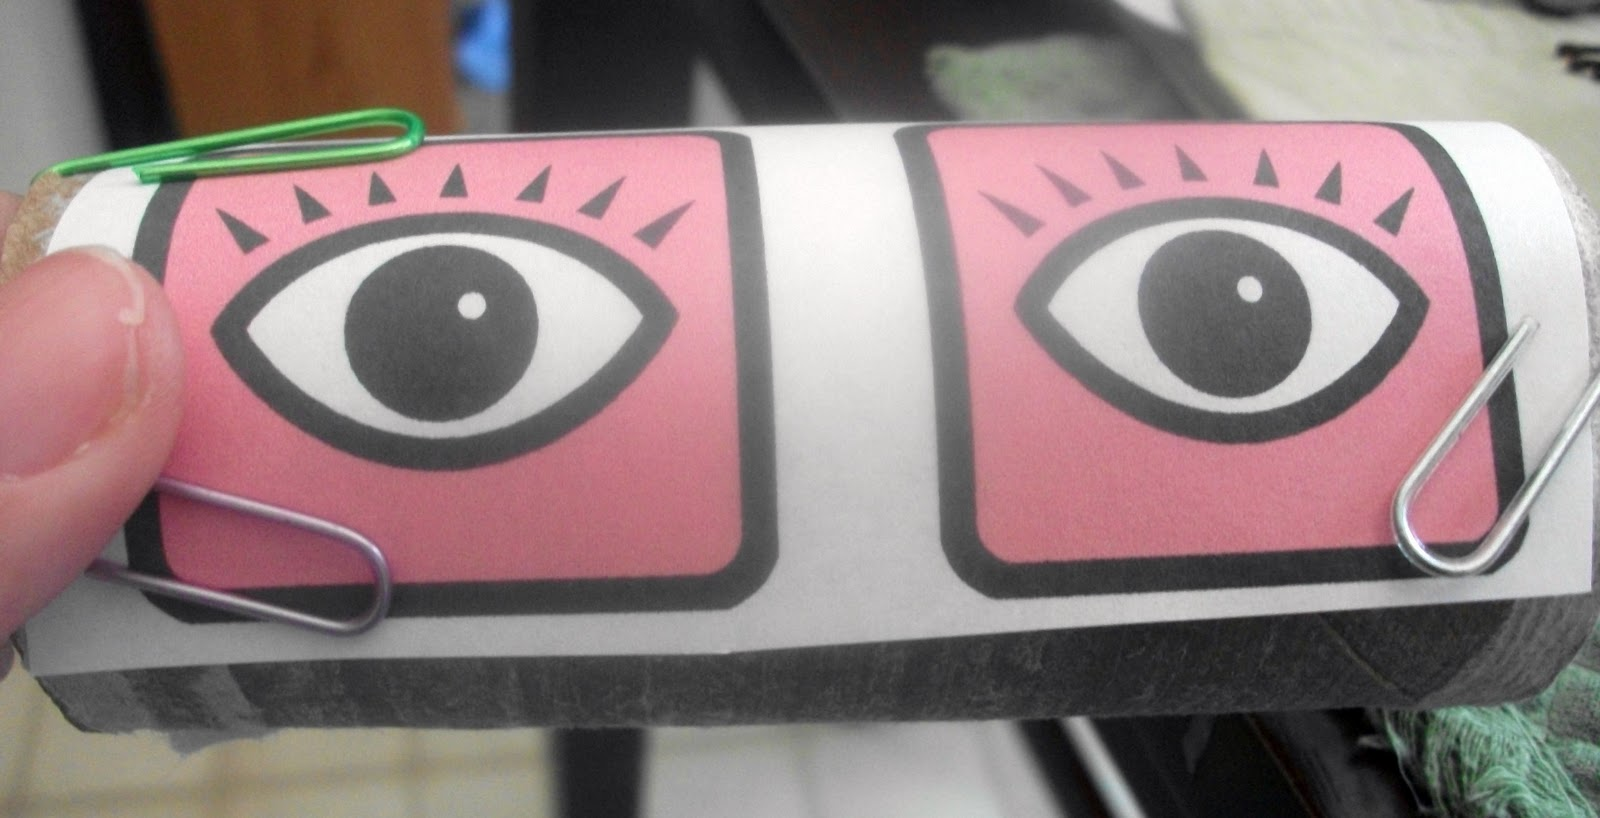 Thrifty crafty girl 31 days of halloween eyes in the bushes for Glow sticks in toilet paper rolls